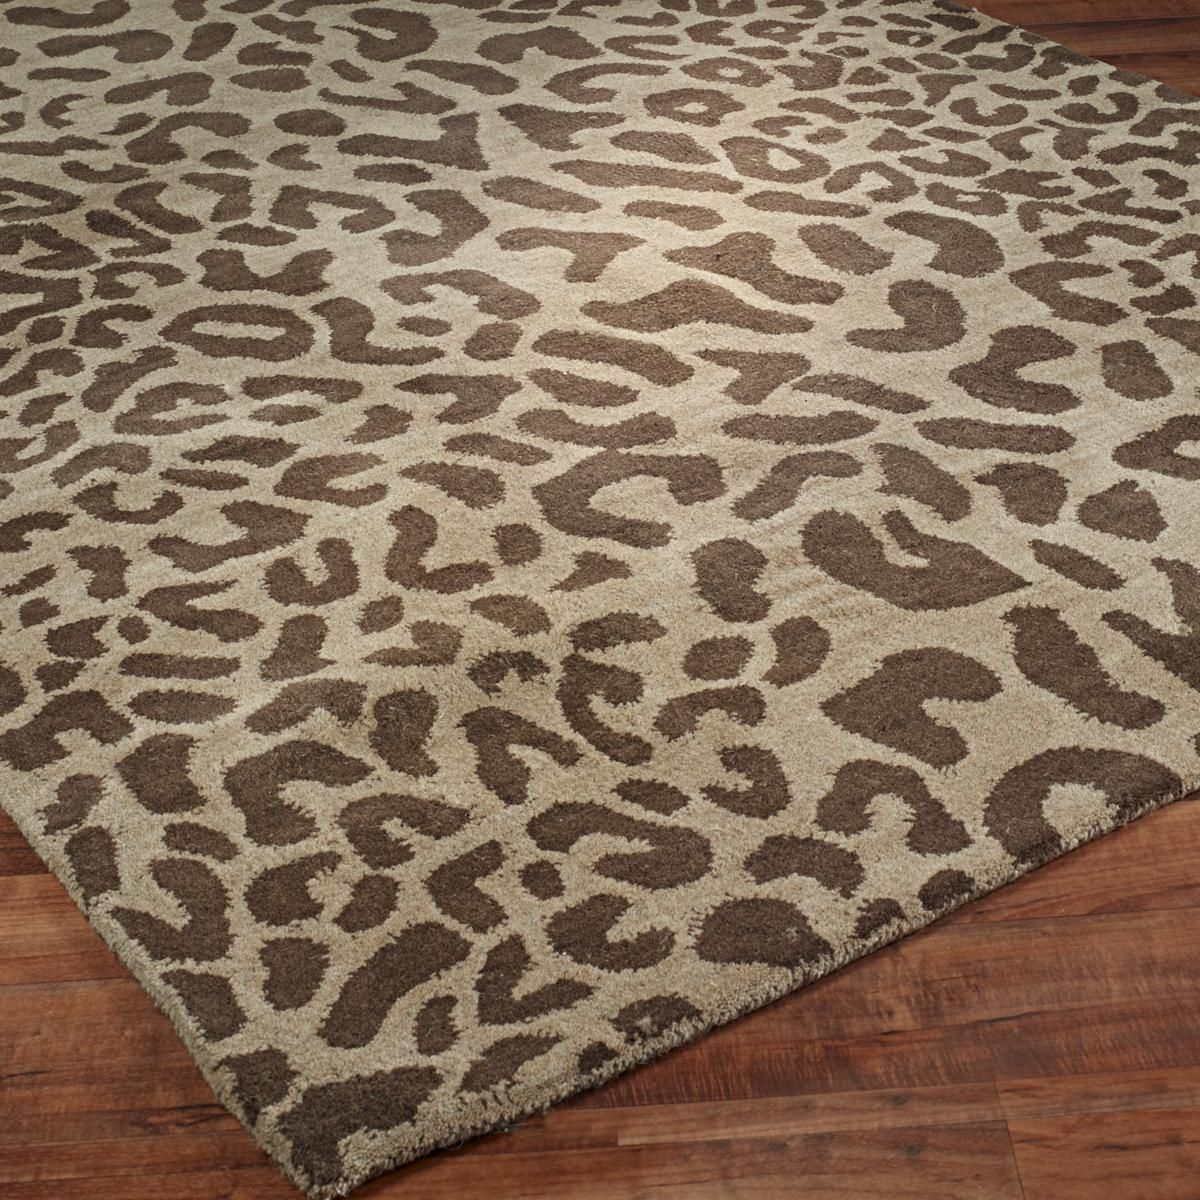 7afe6973bf √ Hand Tufted Modern Leopard Print Rug for living room